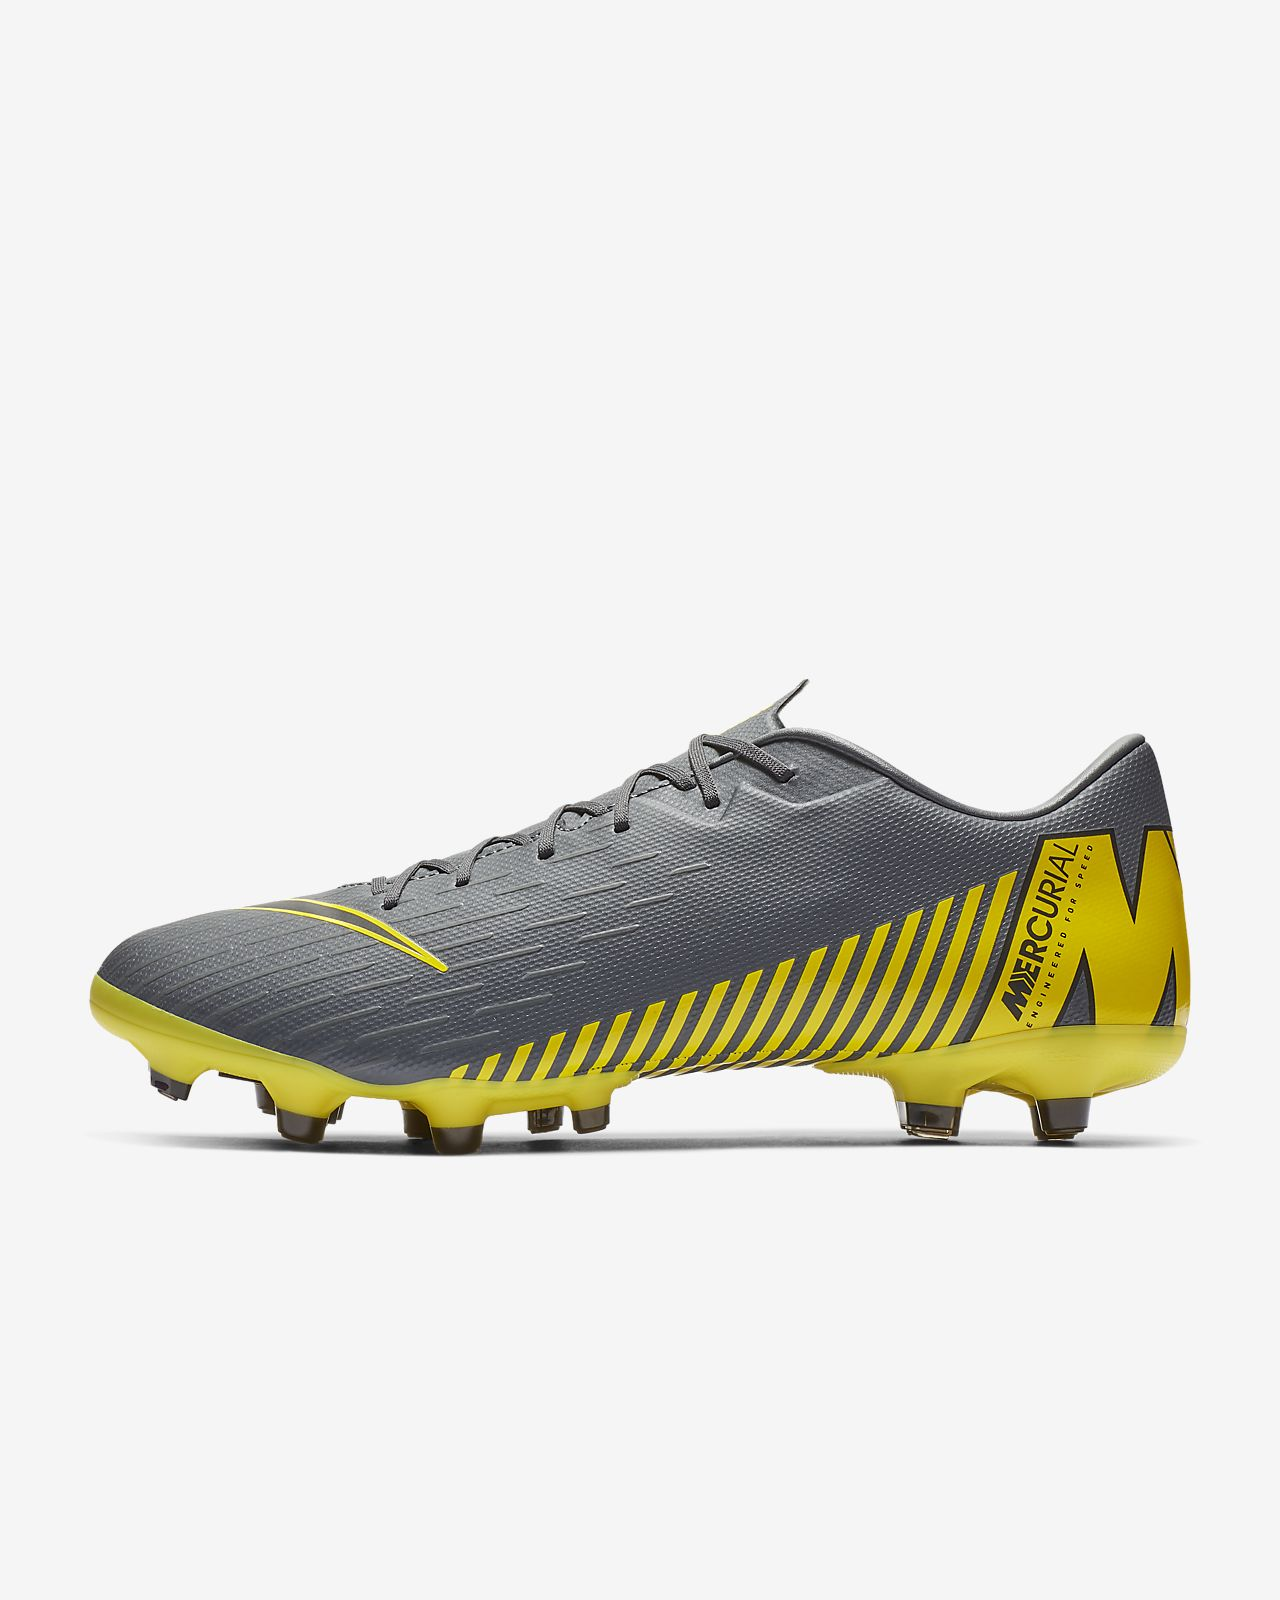 best website 7f929 61e66 ... Chaussure de football multi-terrains à crampons Nike Vapor 12 Academy MG